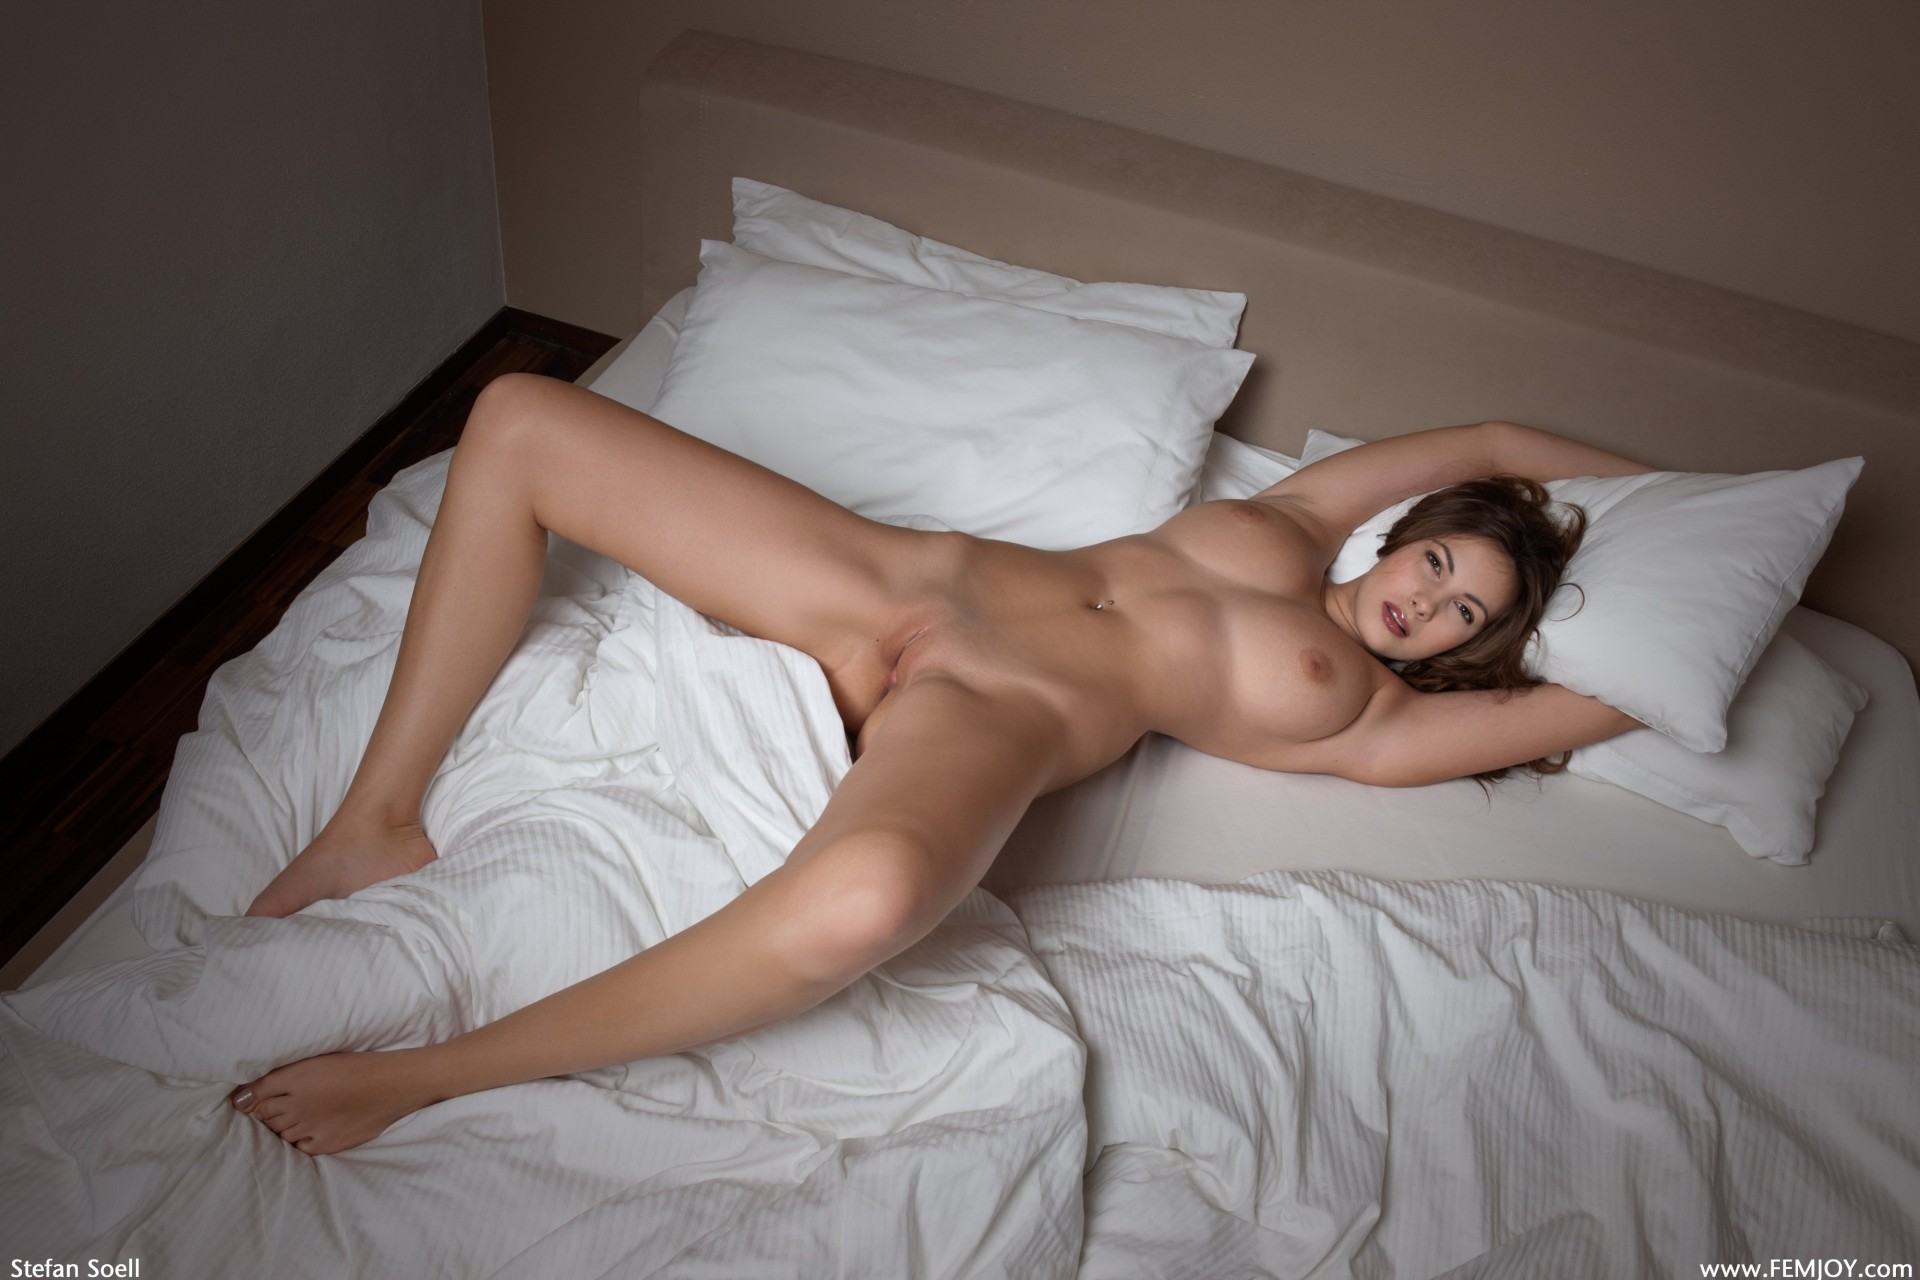 Happy women naked in bed, hotsexyoug grils